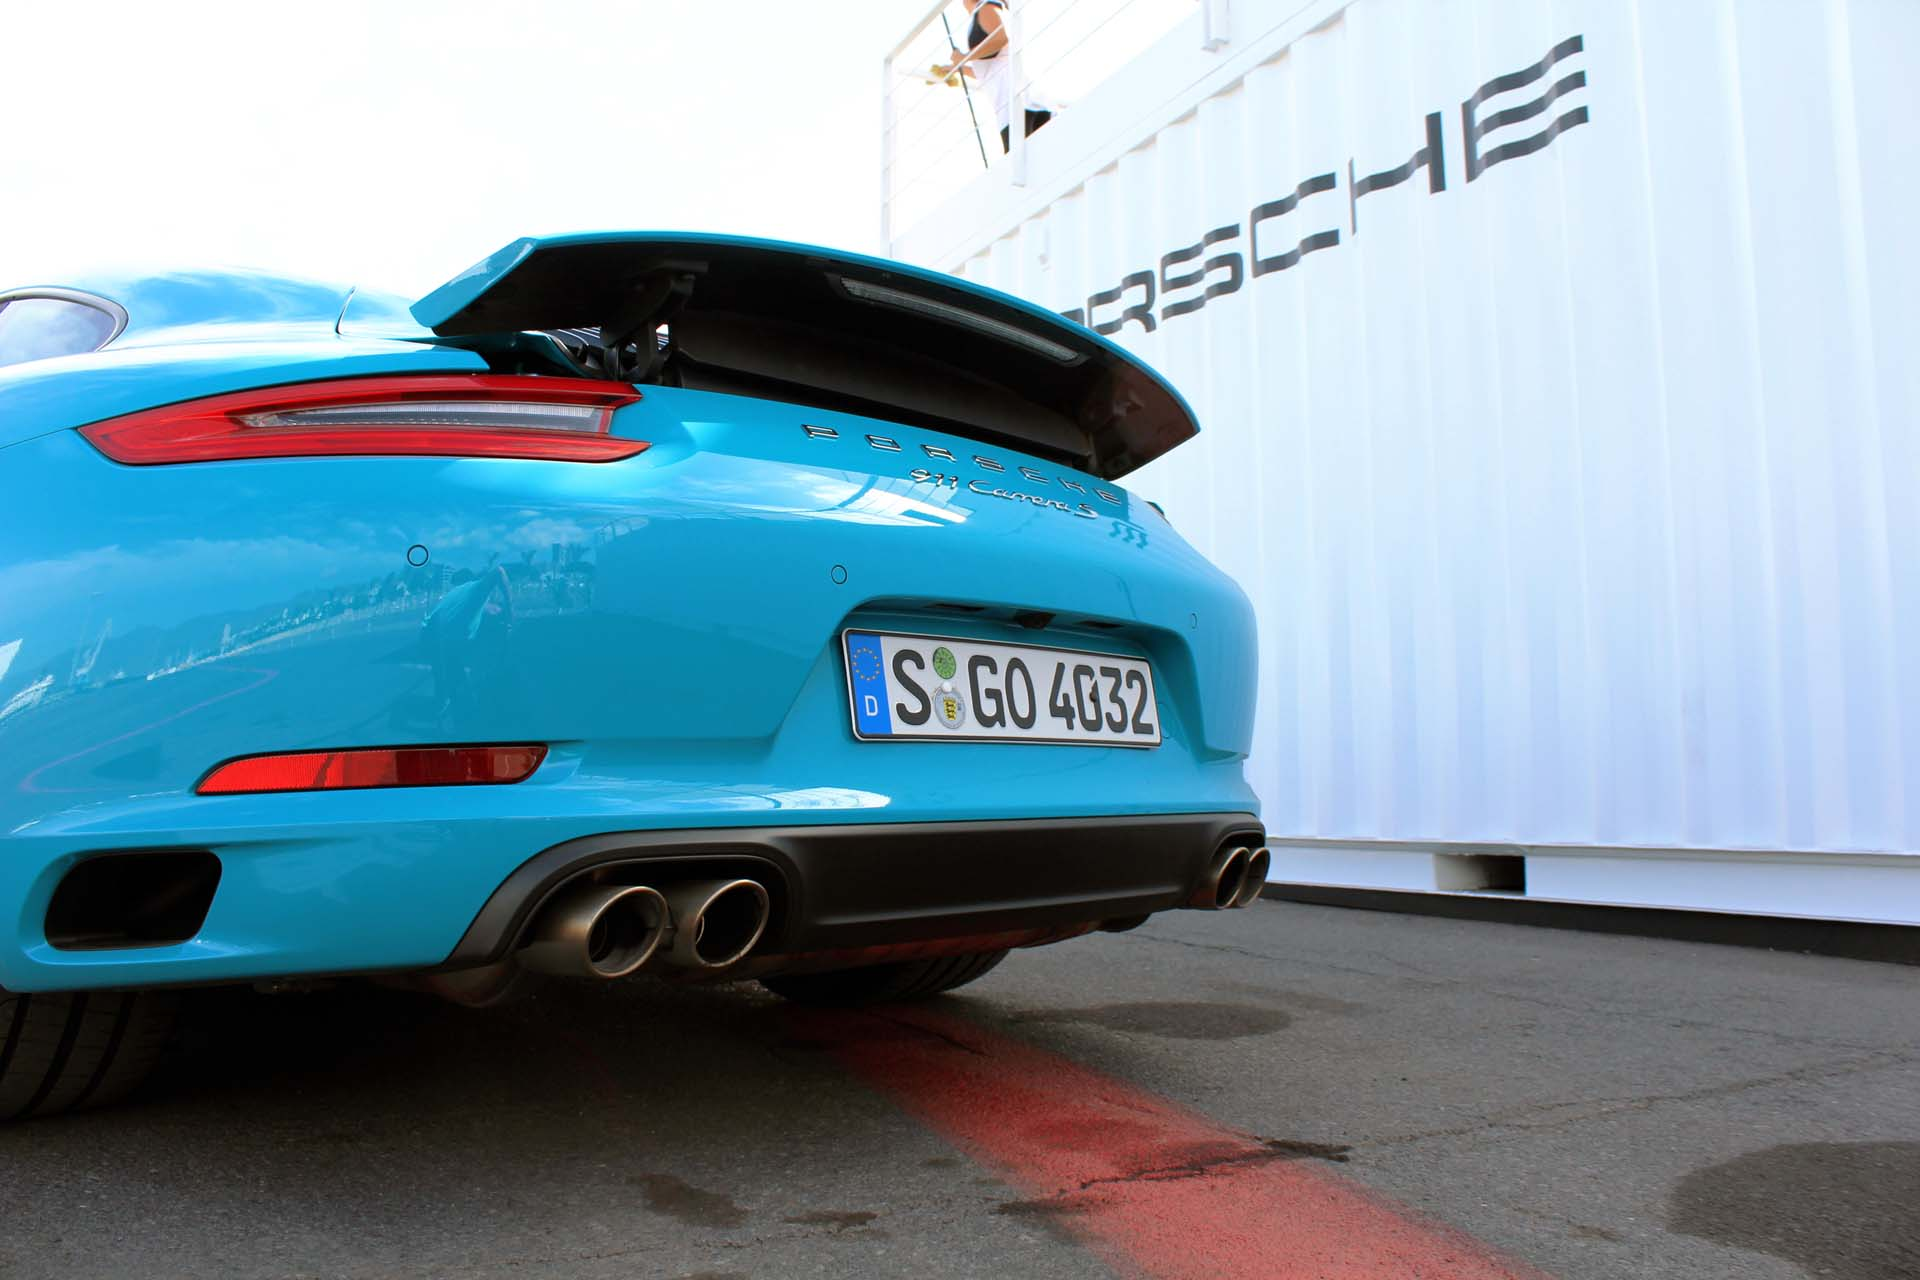 The 911's rear spoiler deploys at 120 km/h but will rise earlier if engine needs more cooling. This Carrera S has the standard exhaust system – the pair of wide spread dual-tips are the clue.